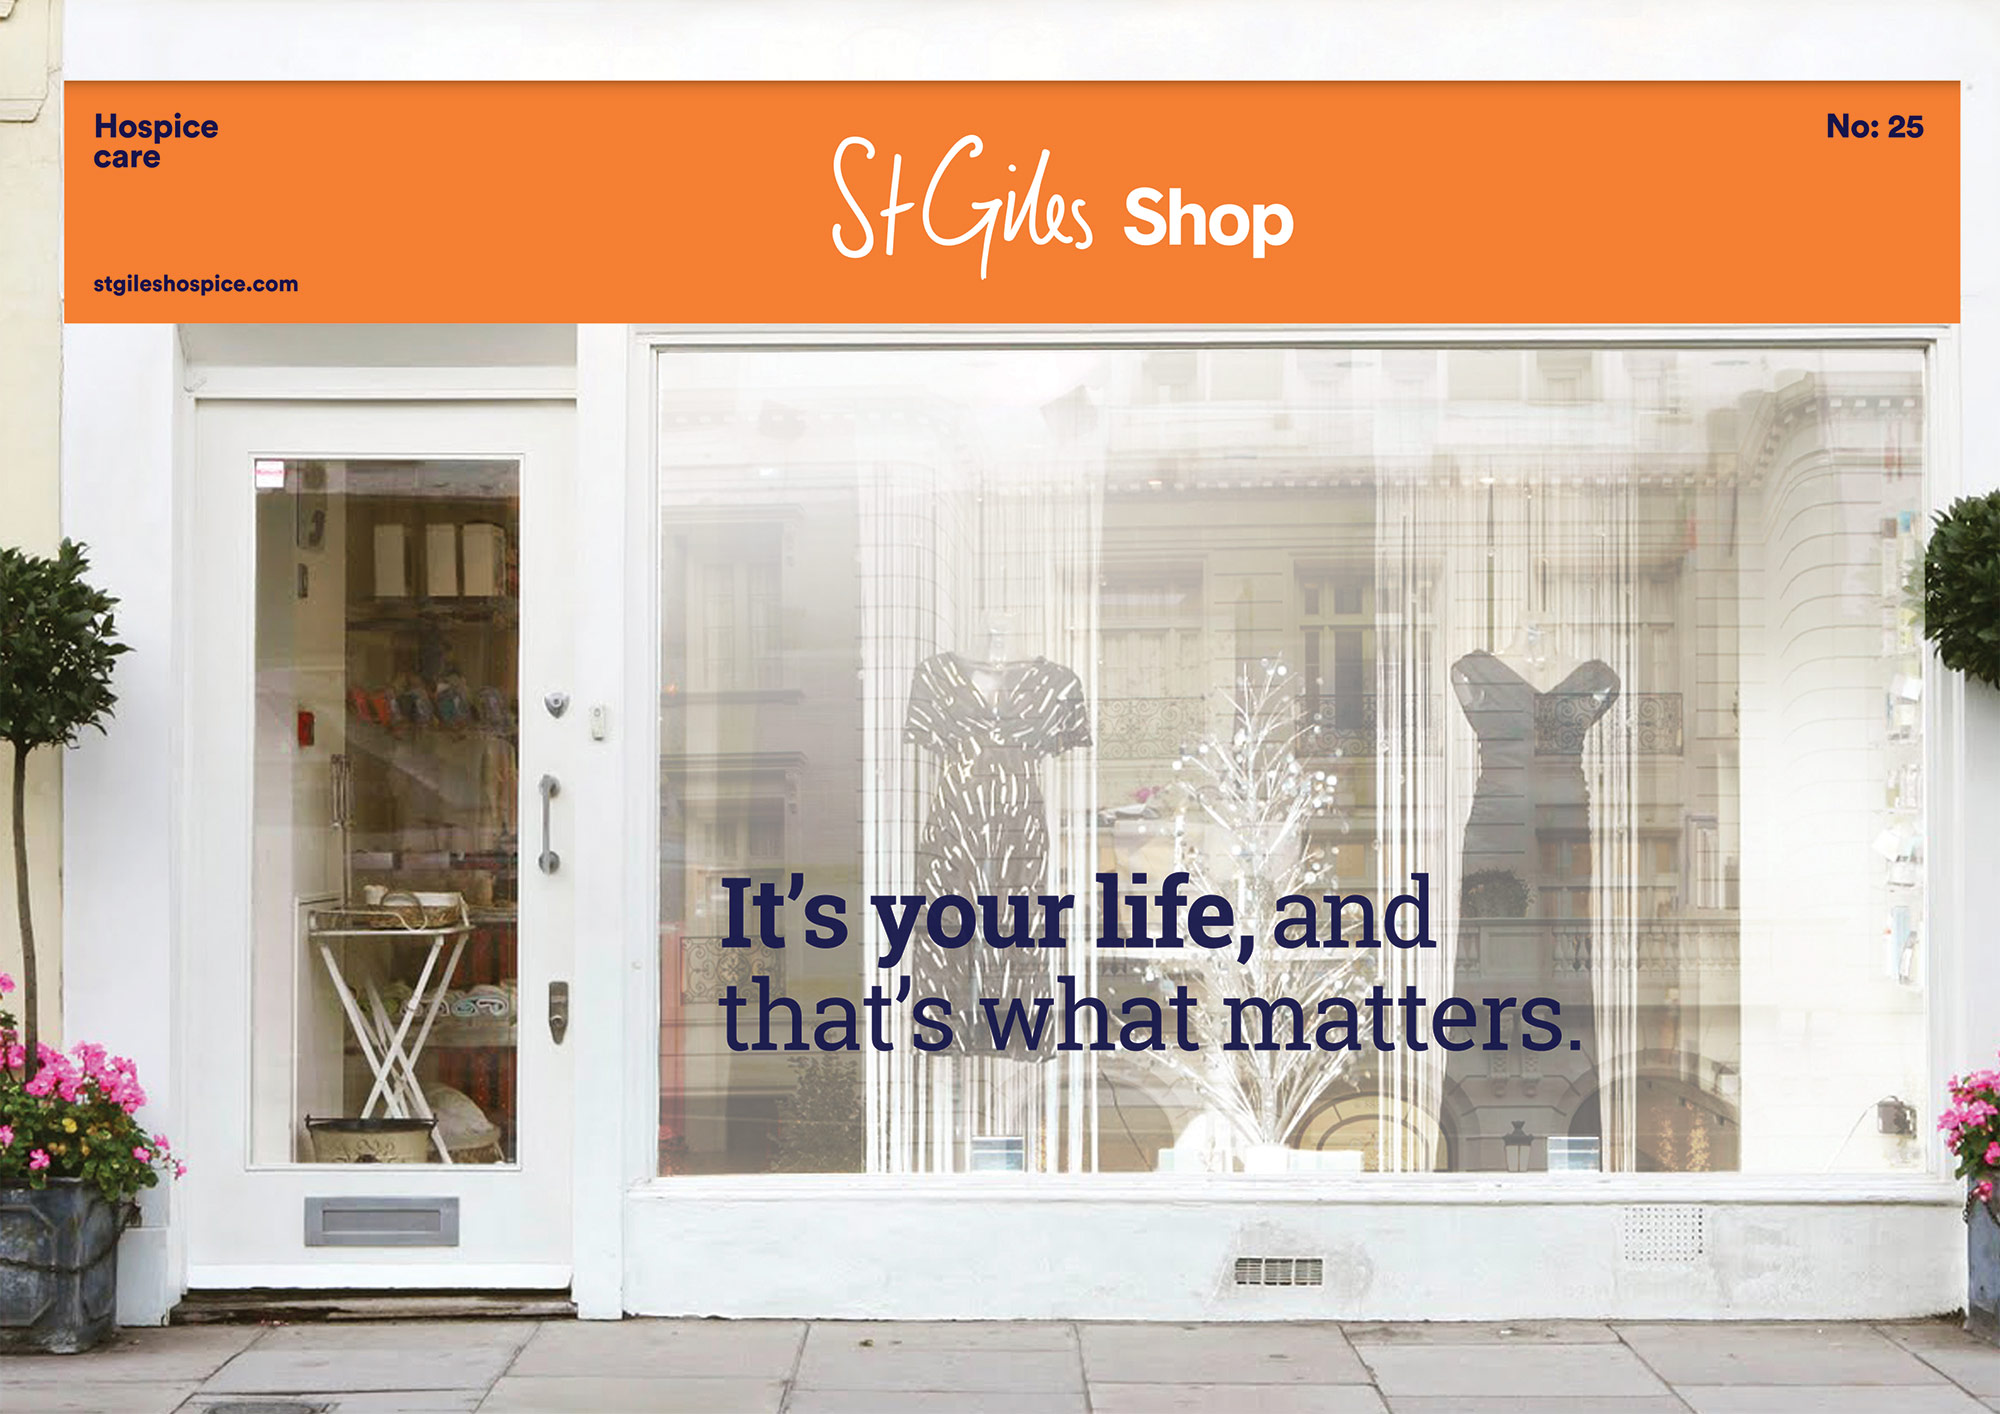 St Giles Hospice shop front